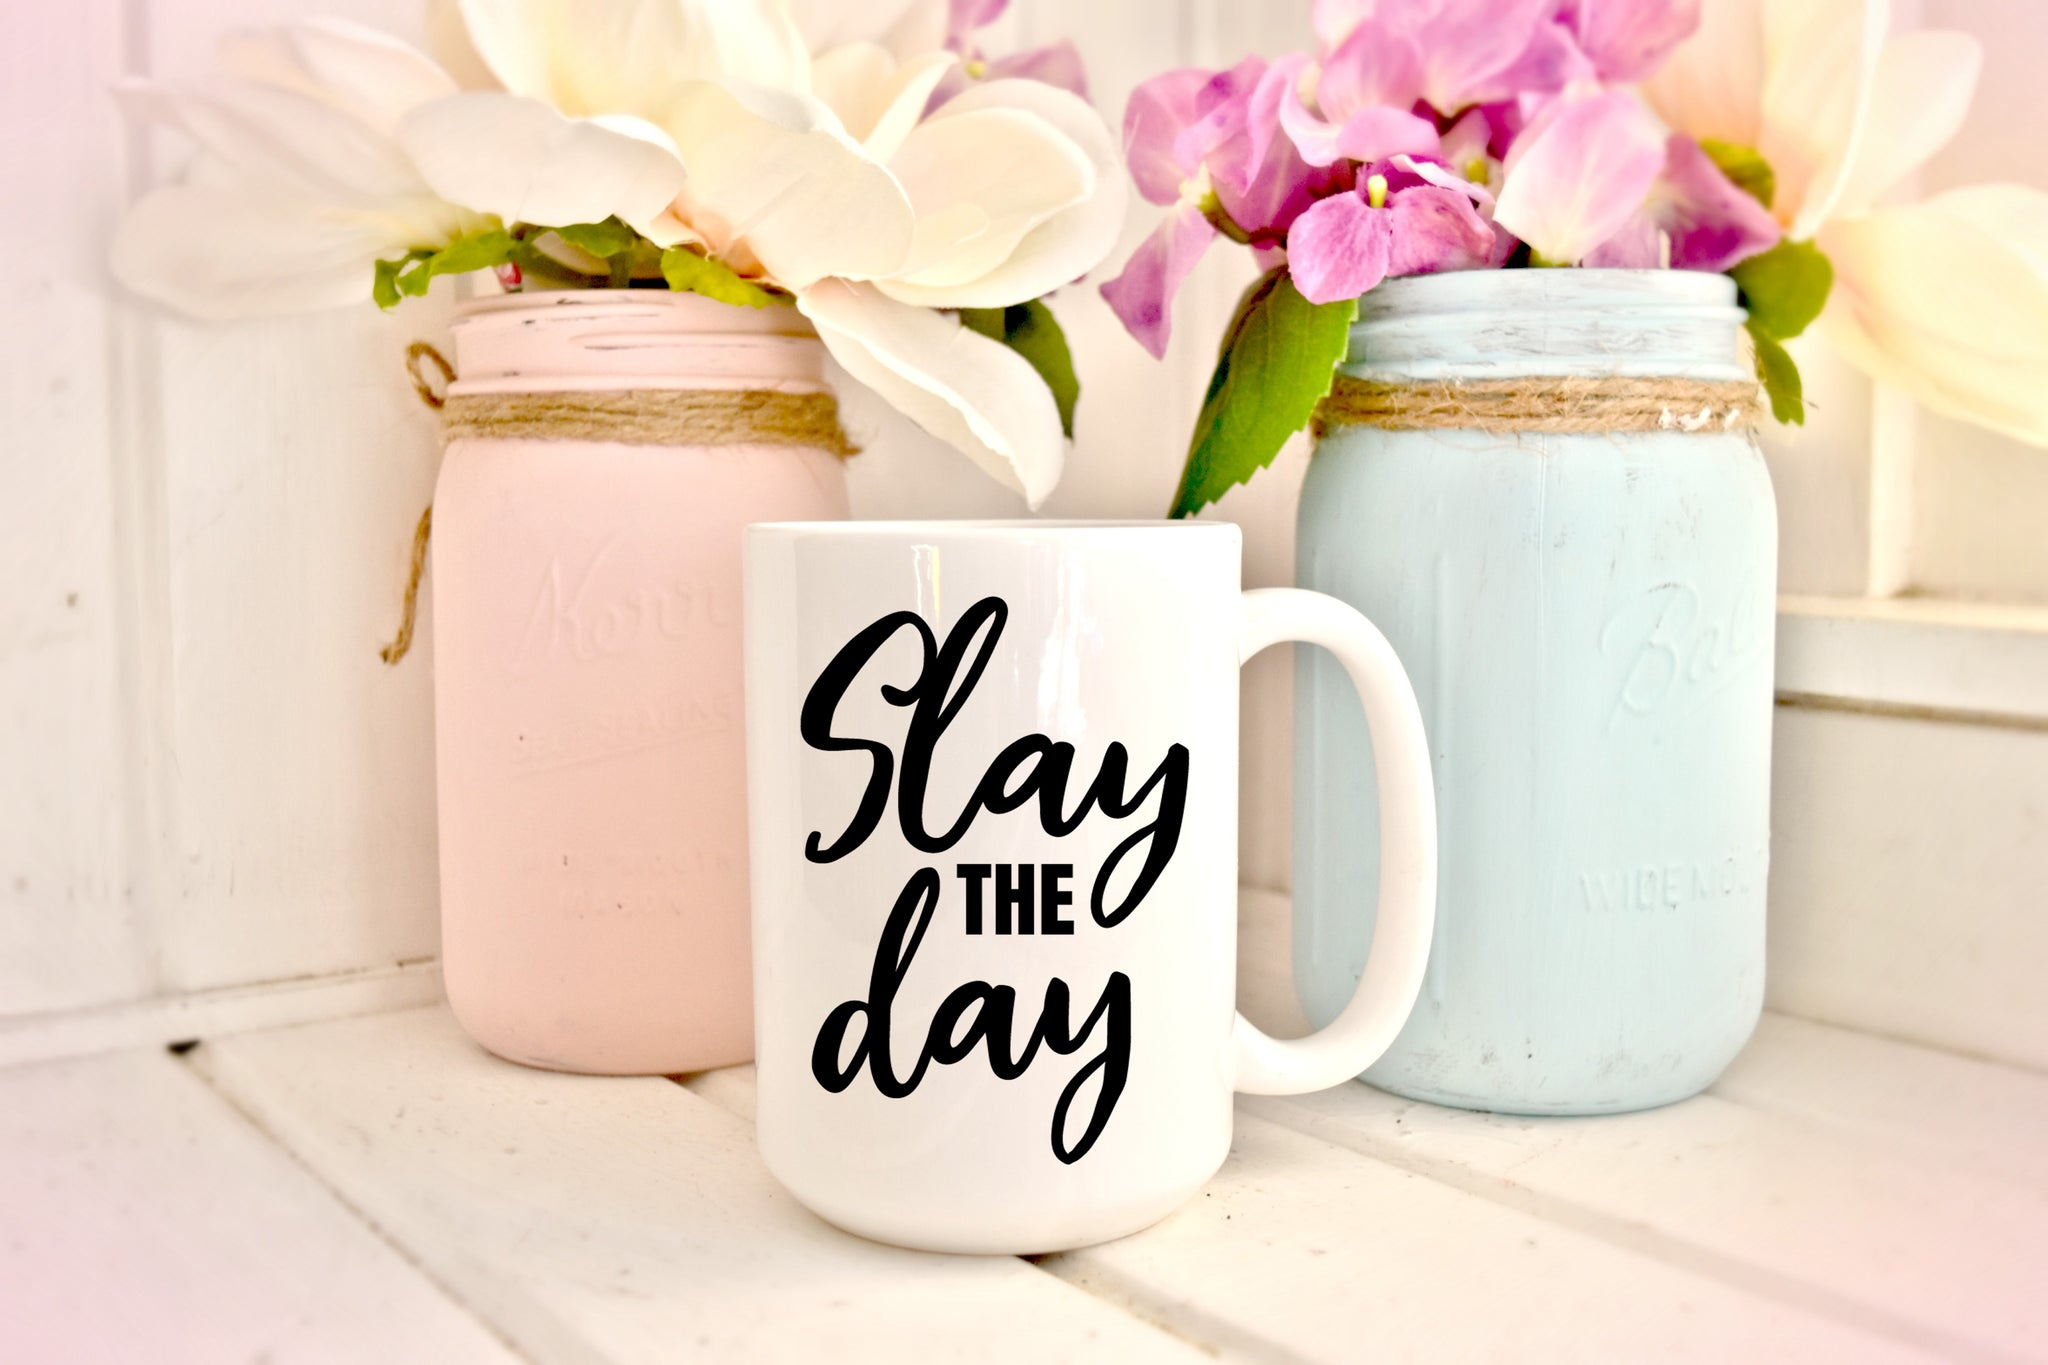 Slay The Day: Coffee Mug